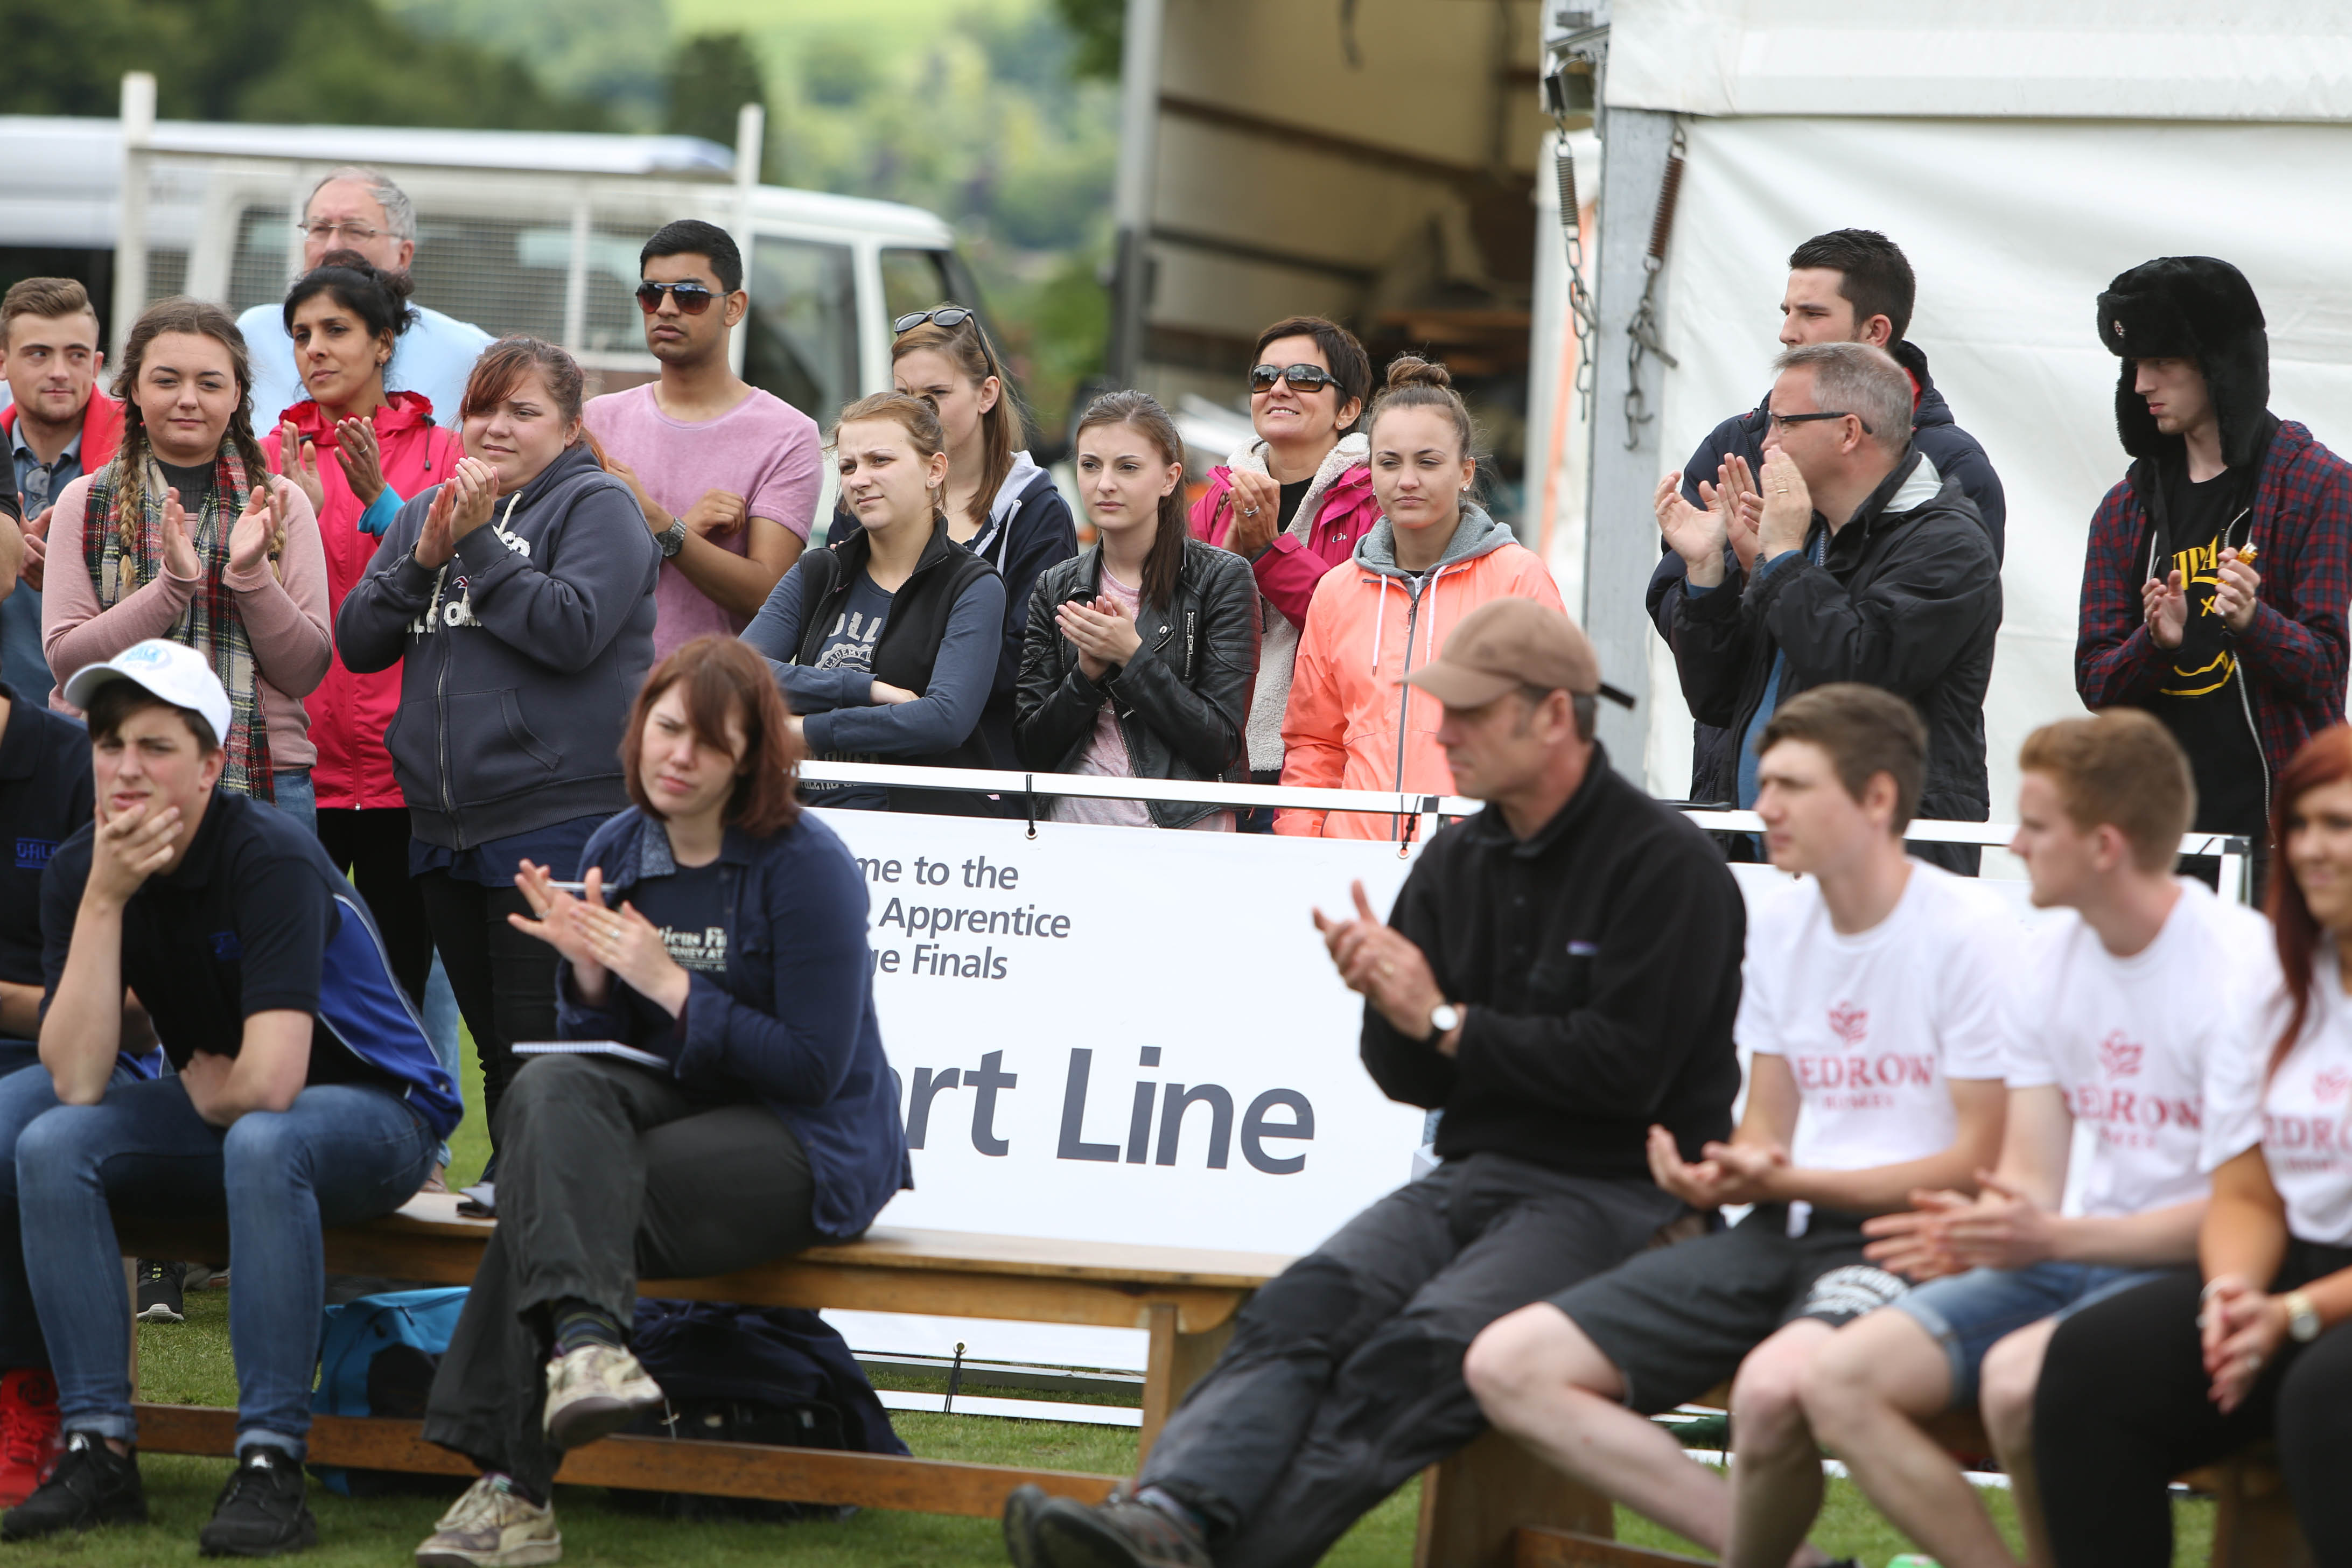 Reporter Rebecca Cooney (sitting second from left) applauds the apprentices